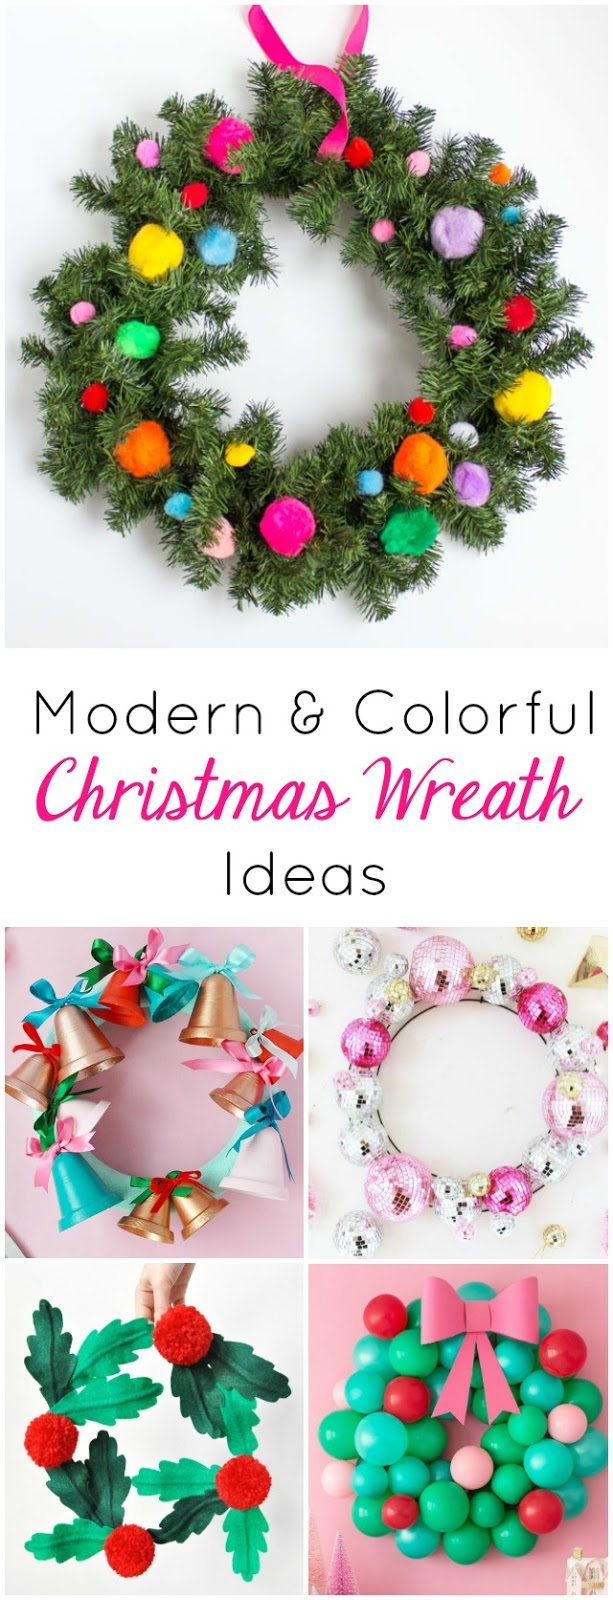 Check out these 12 gorgeous DIY Christmas wreath crafts - all modern, colorful, and totally unique!